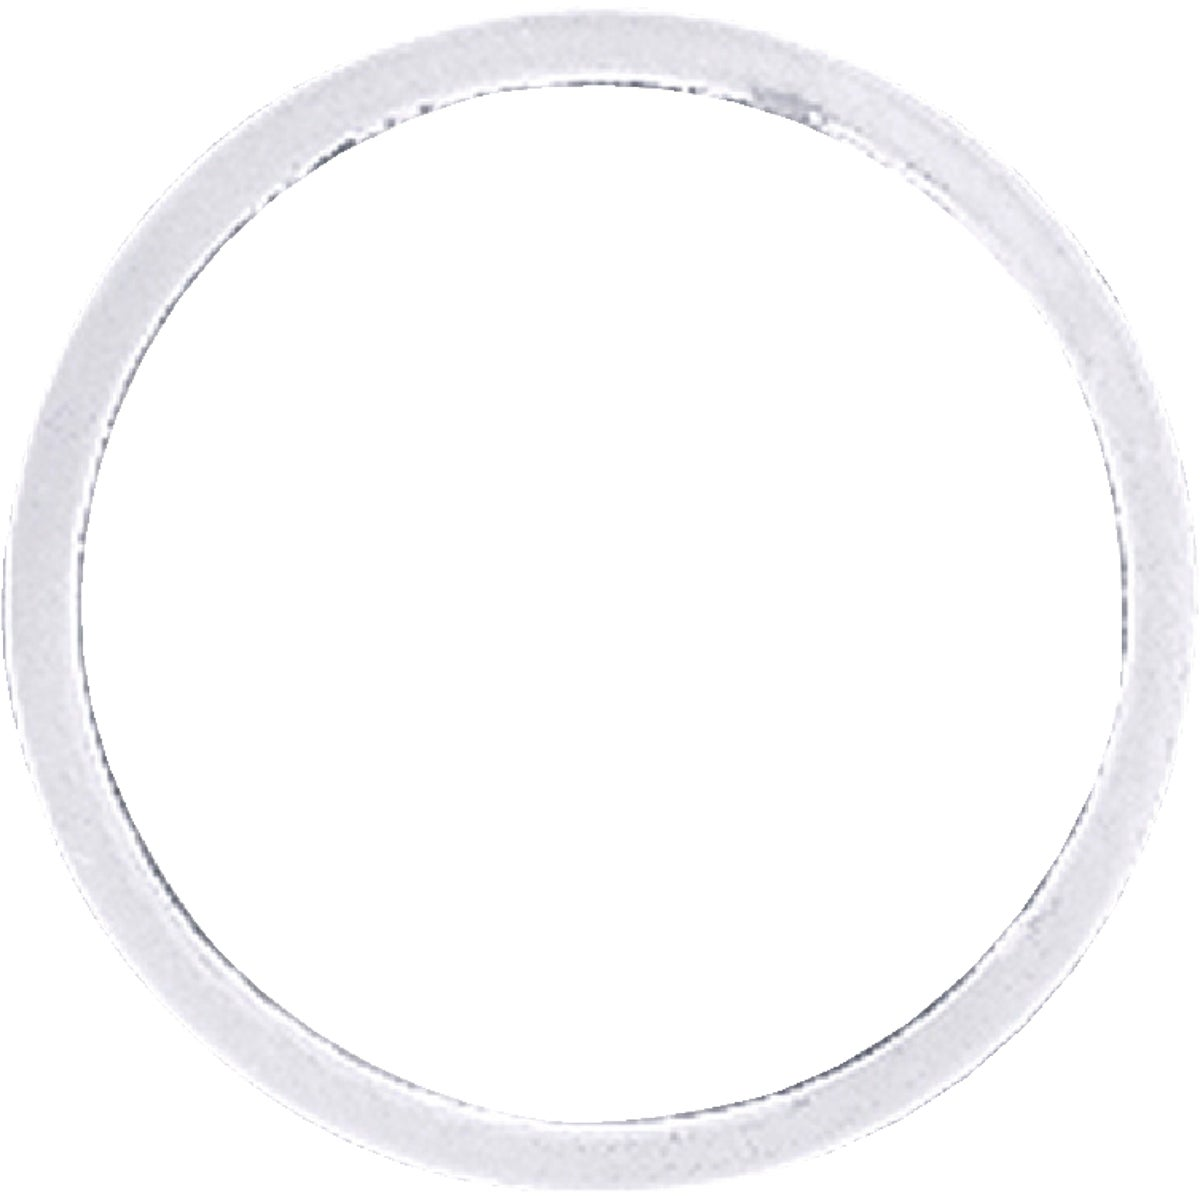 #39 CAP THREAD GASKET